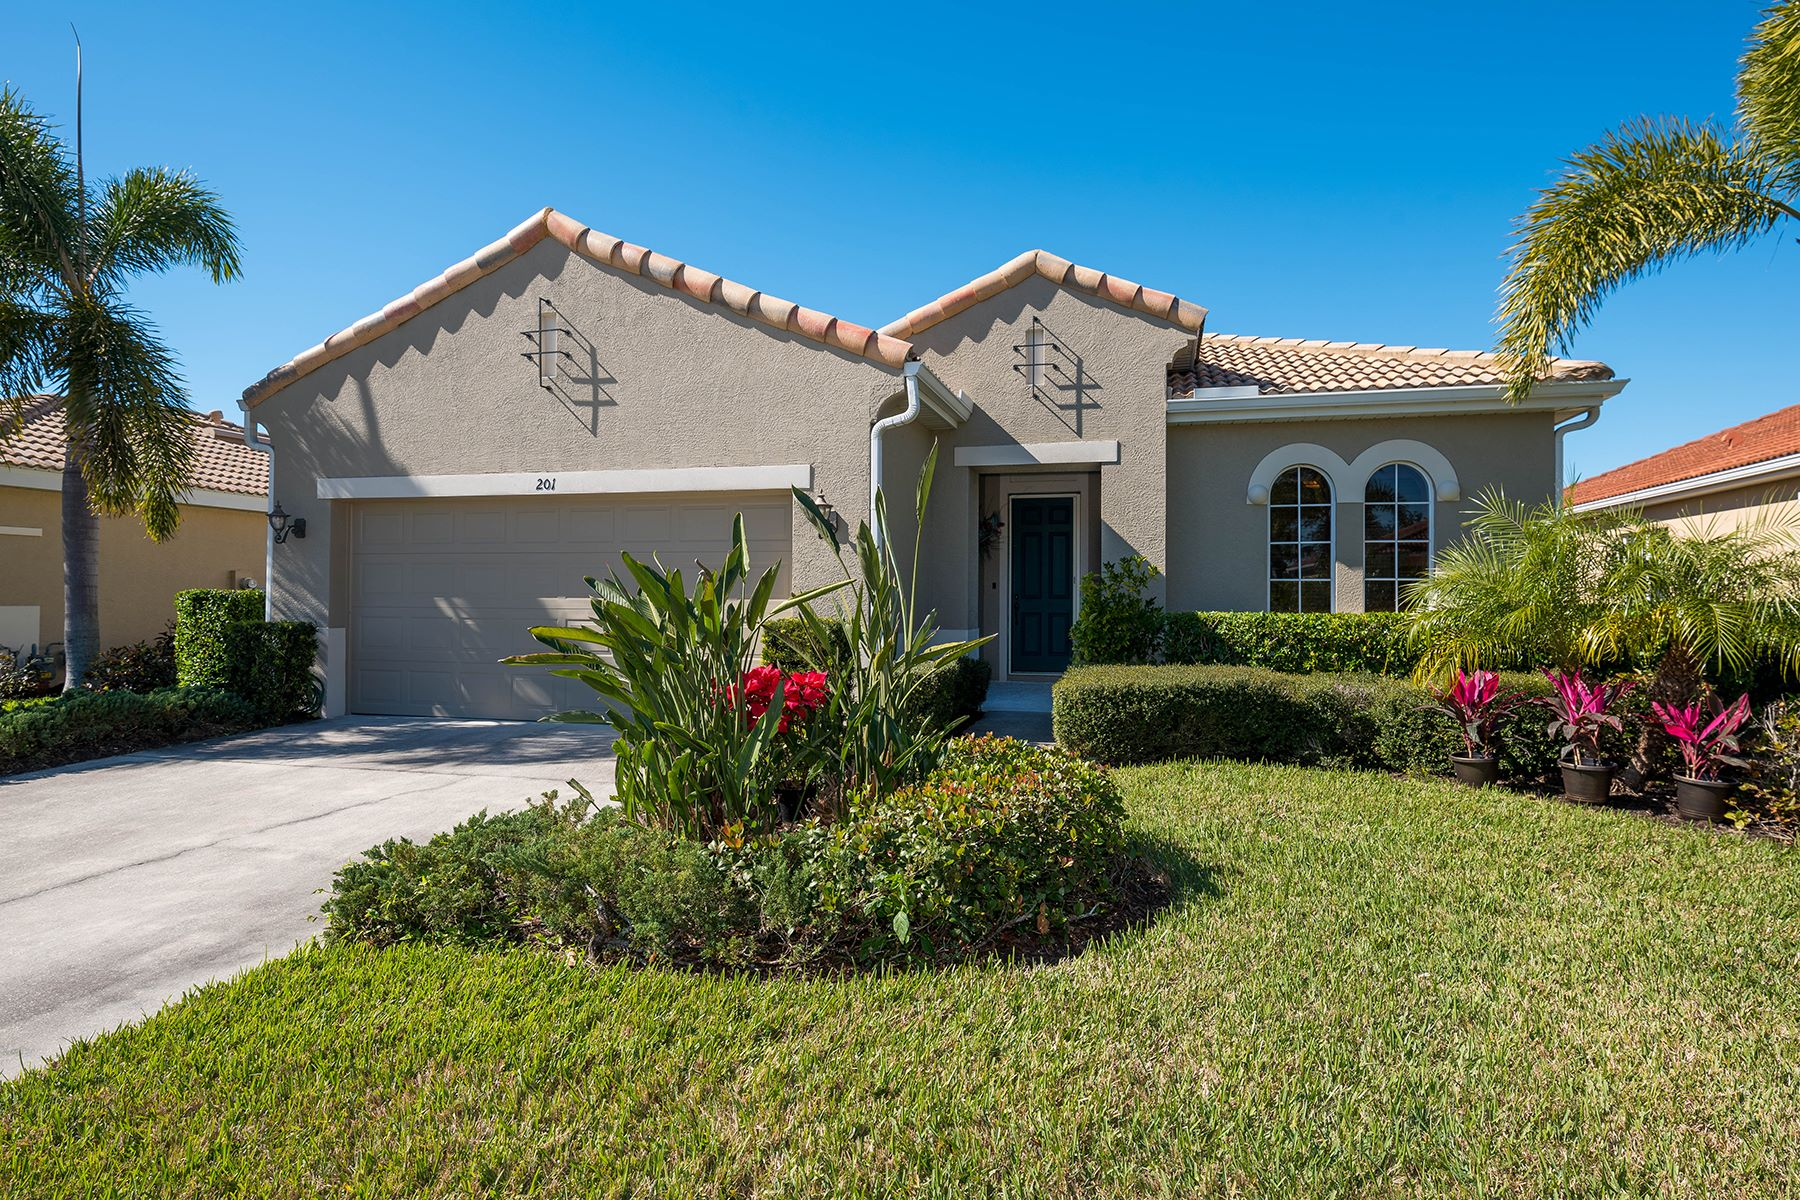 Single Family Home for Sale at VENETIAN GOLF & RIVER CLUB 201 Savona Way, North Venice, Florida, 34275 United States